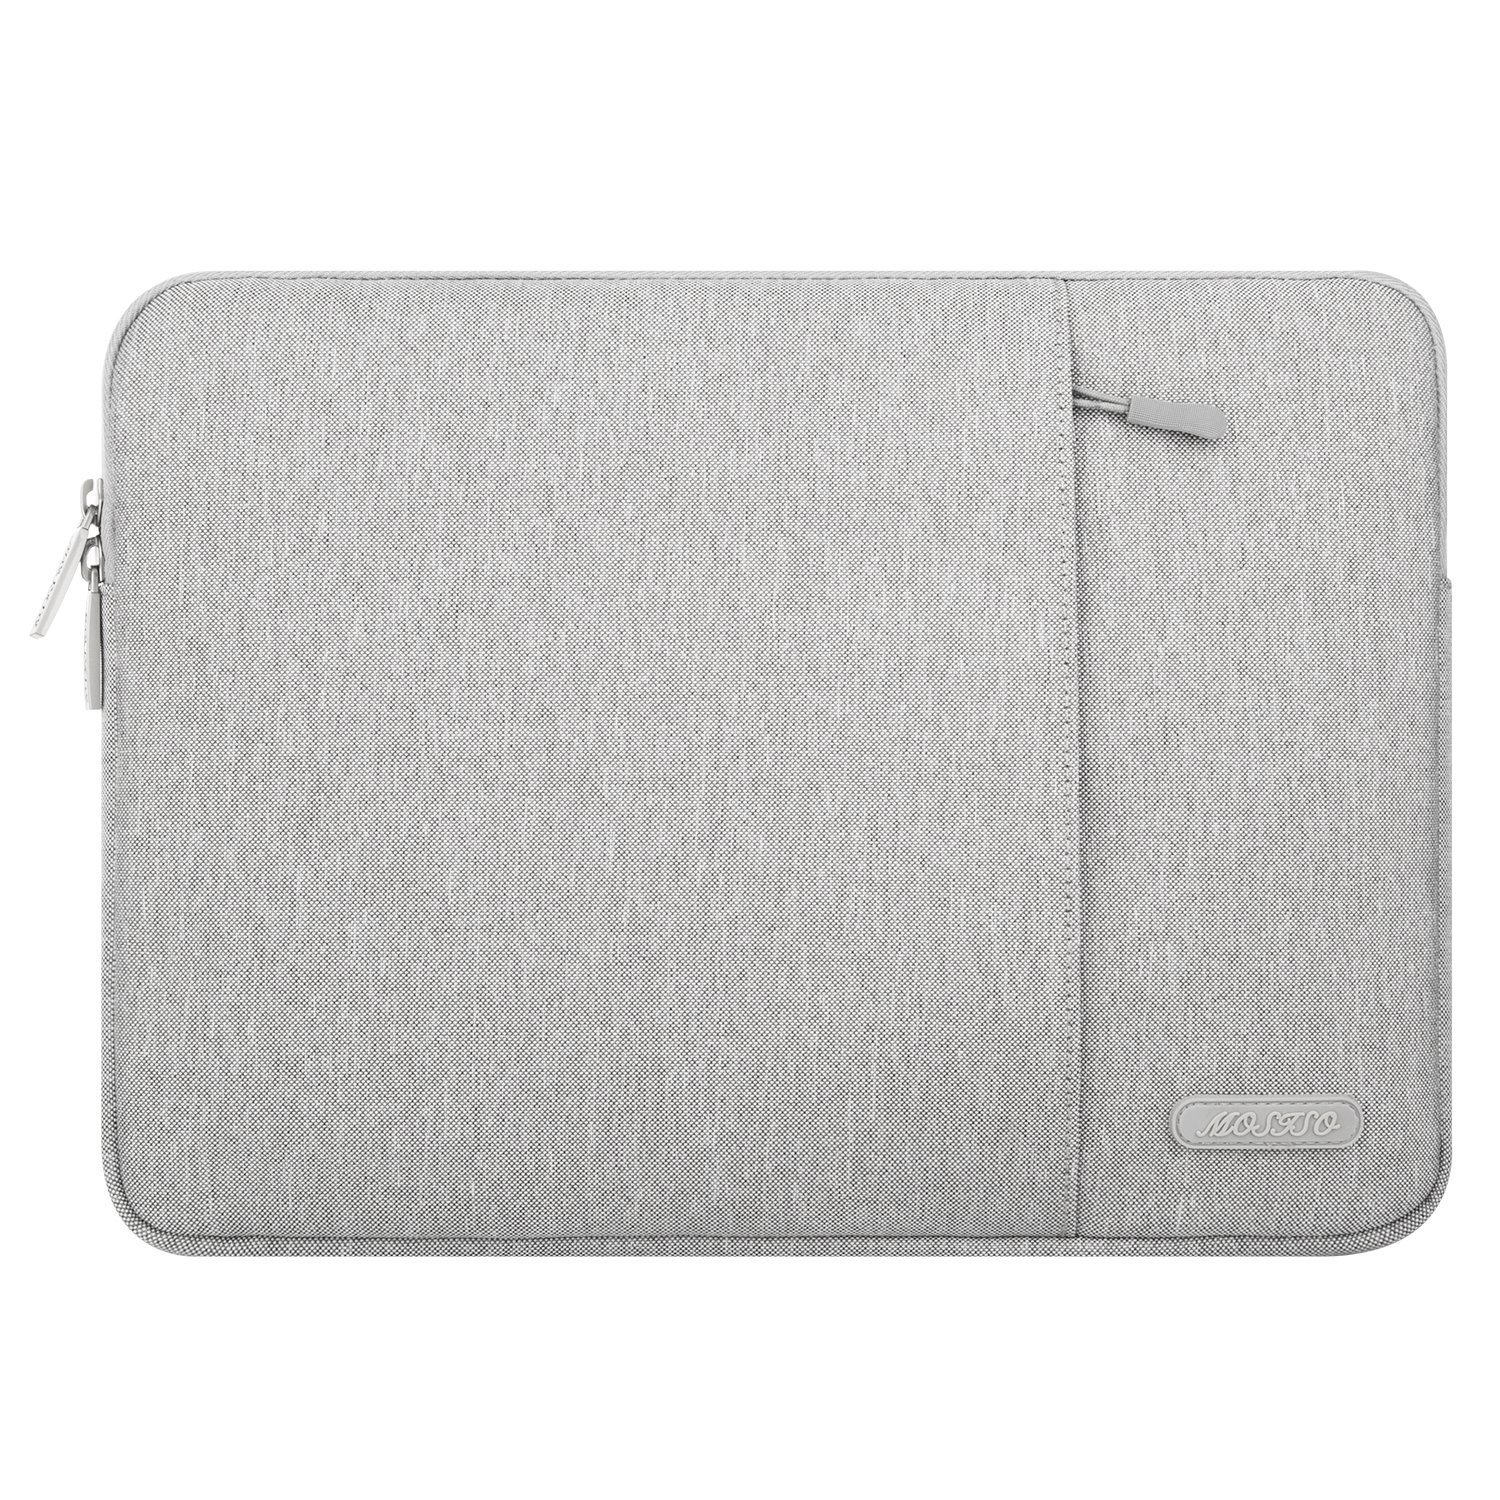 MOSISO iPad Air 3 10.5 2019 Sleeve Case, Compatible with 9.7-11 Inch iPad Pro, Surface Go 2018, iPad Air 2/Air(iPad 6/5), iPad 1/2/3/4 Water Repellent Polyester Vertical Pocket Tablet Bag, Gray by MOSISO